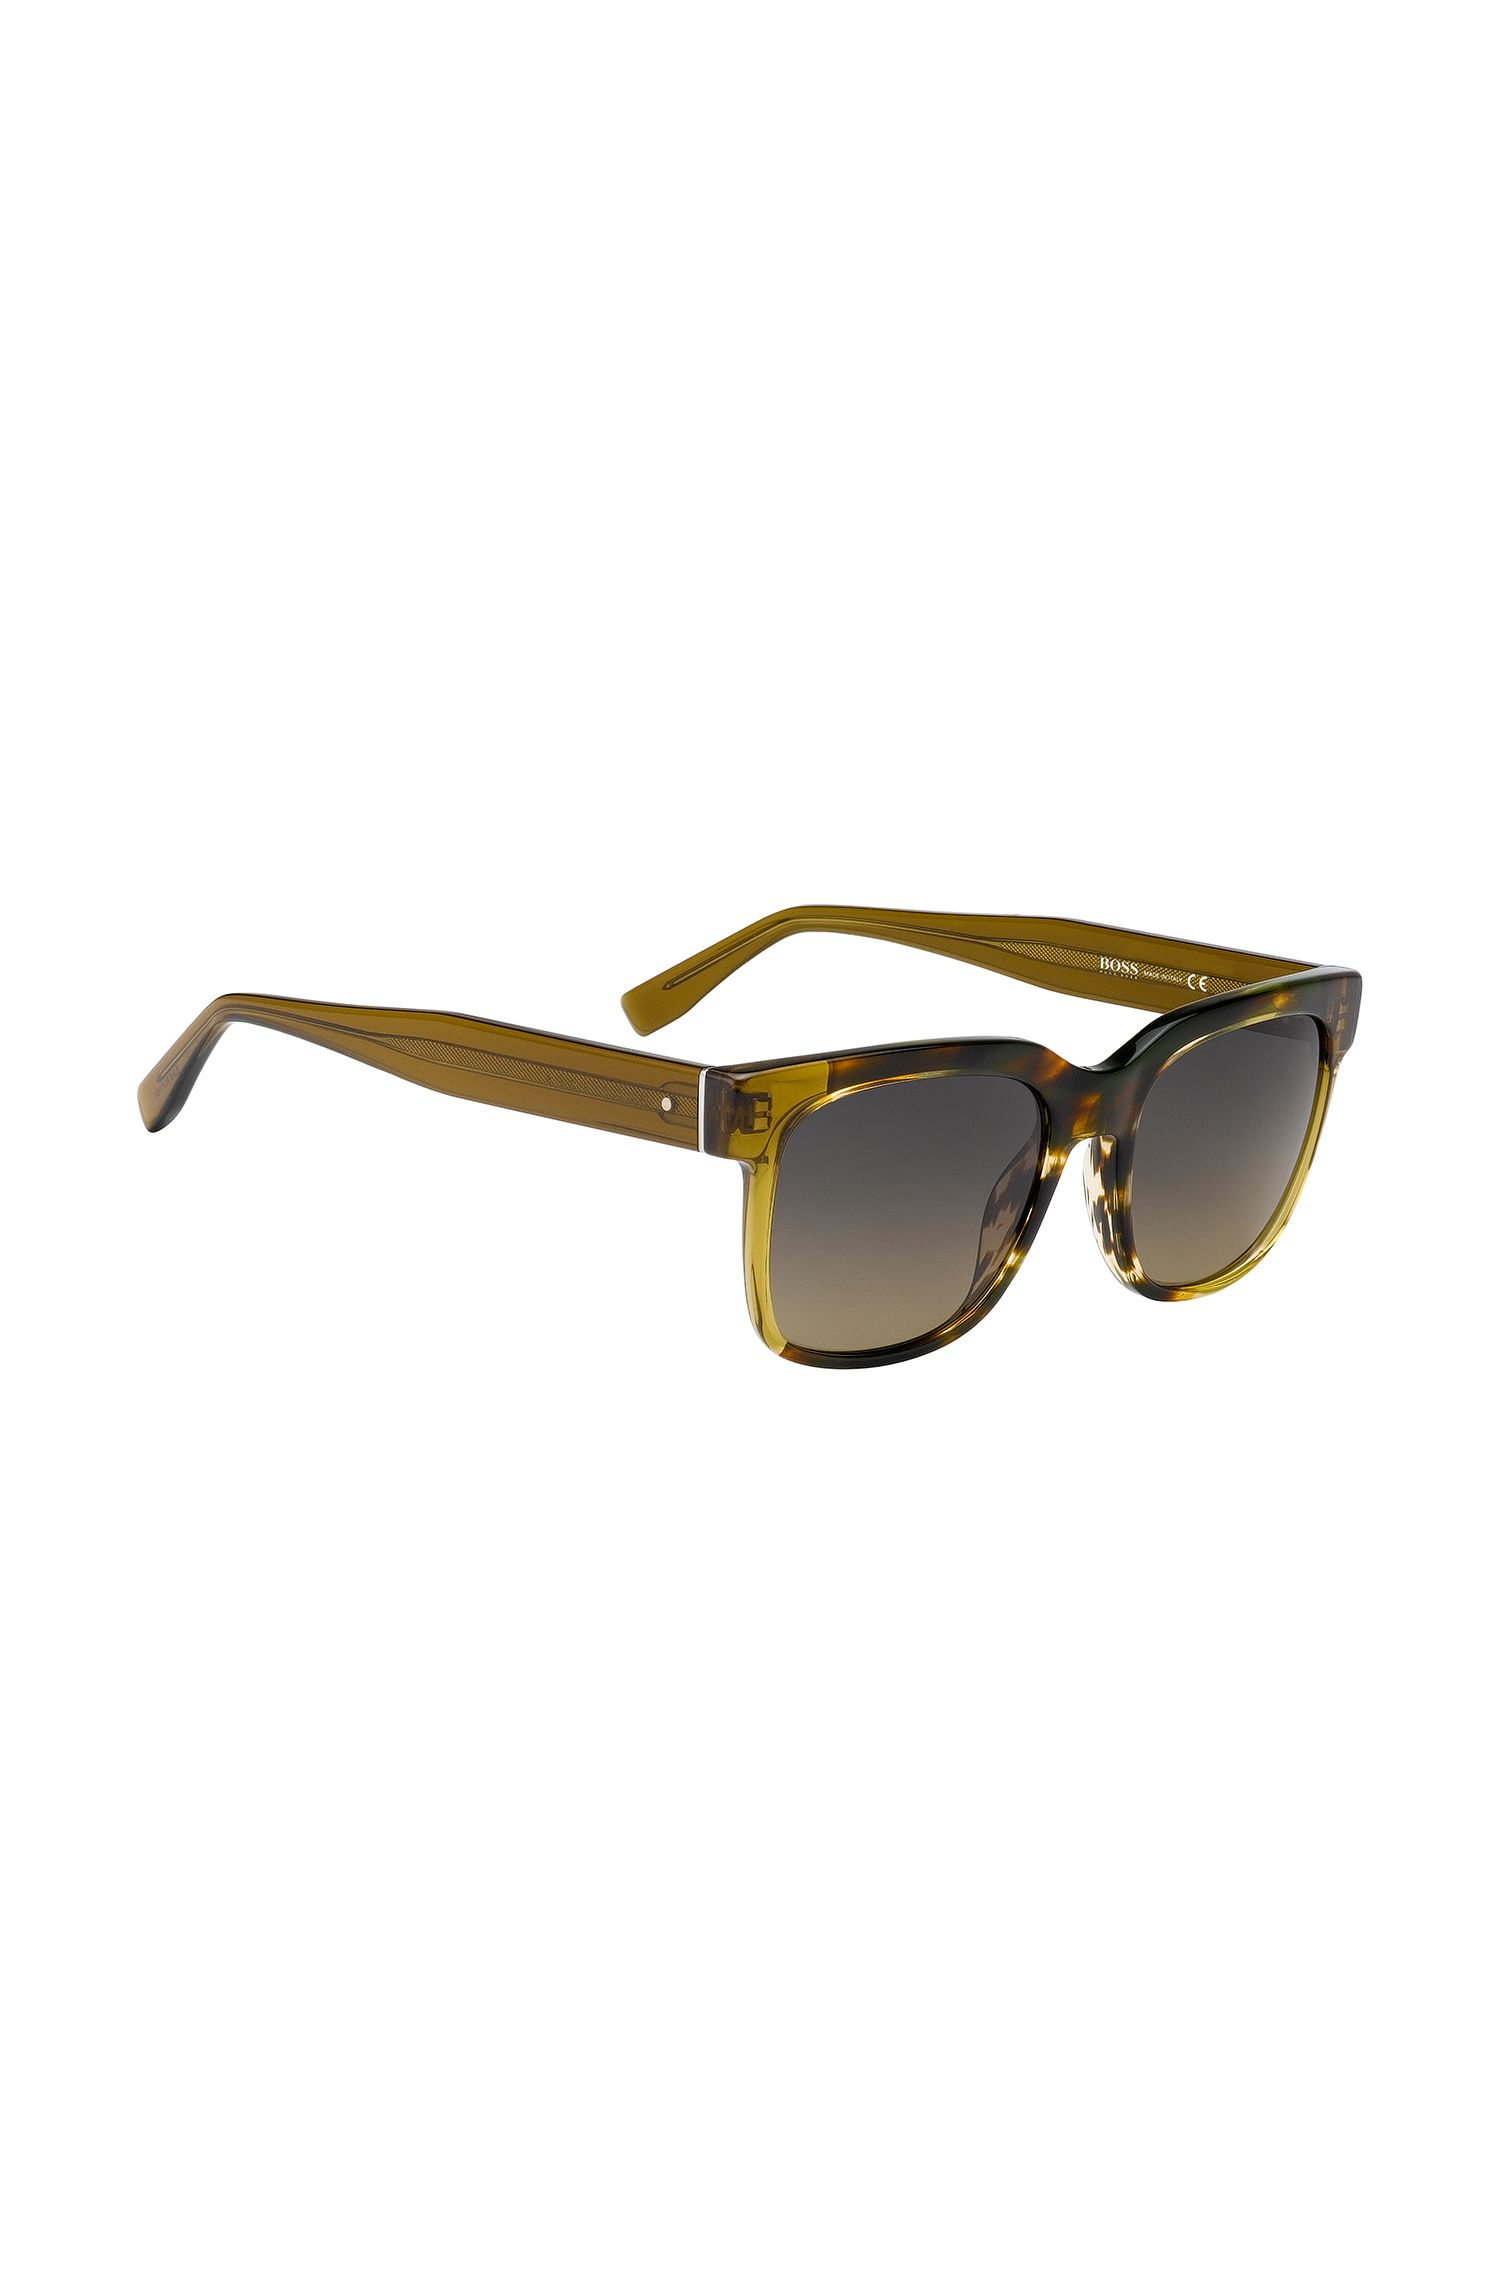 Gradient Lens Acetate Sunglasses | BOSS 0735S, Assorted-Pre-Pack